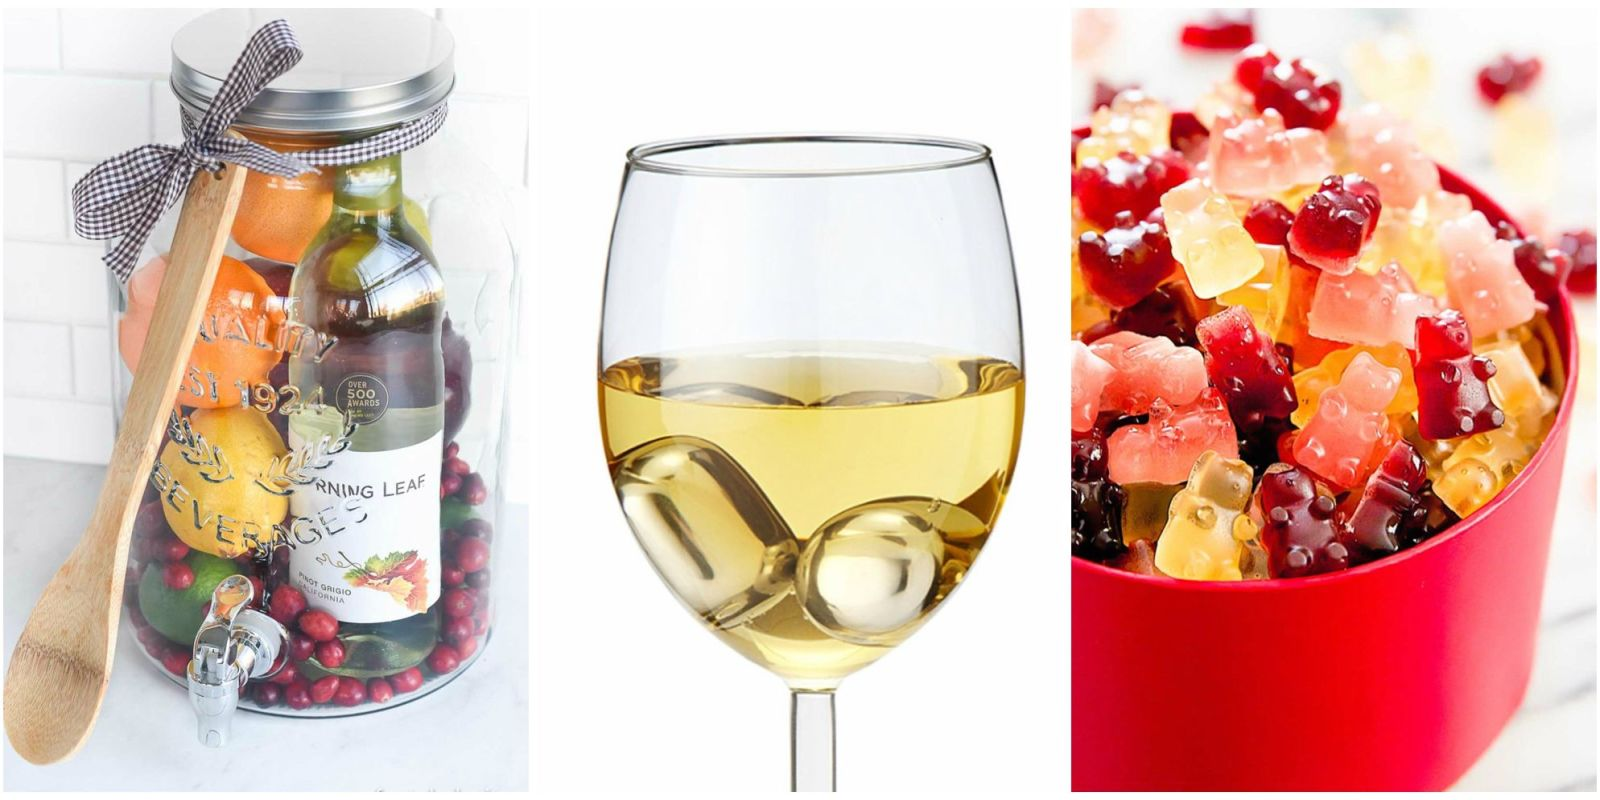 15 best wine gifts for her cool gift ideas for wine lovers for Best wine gift ideas